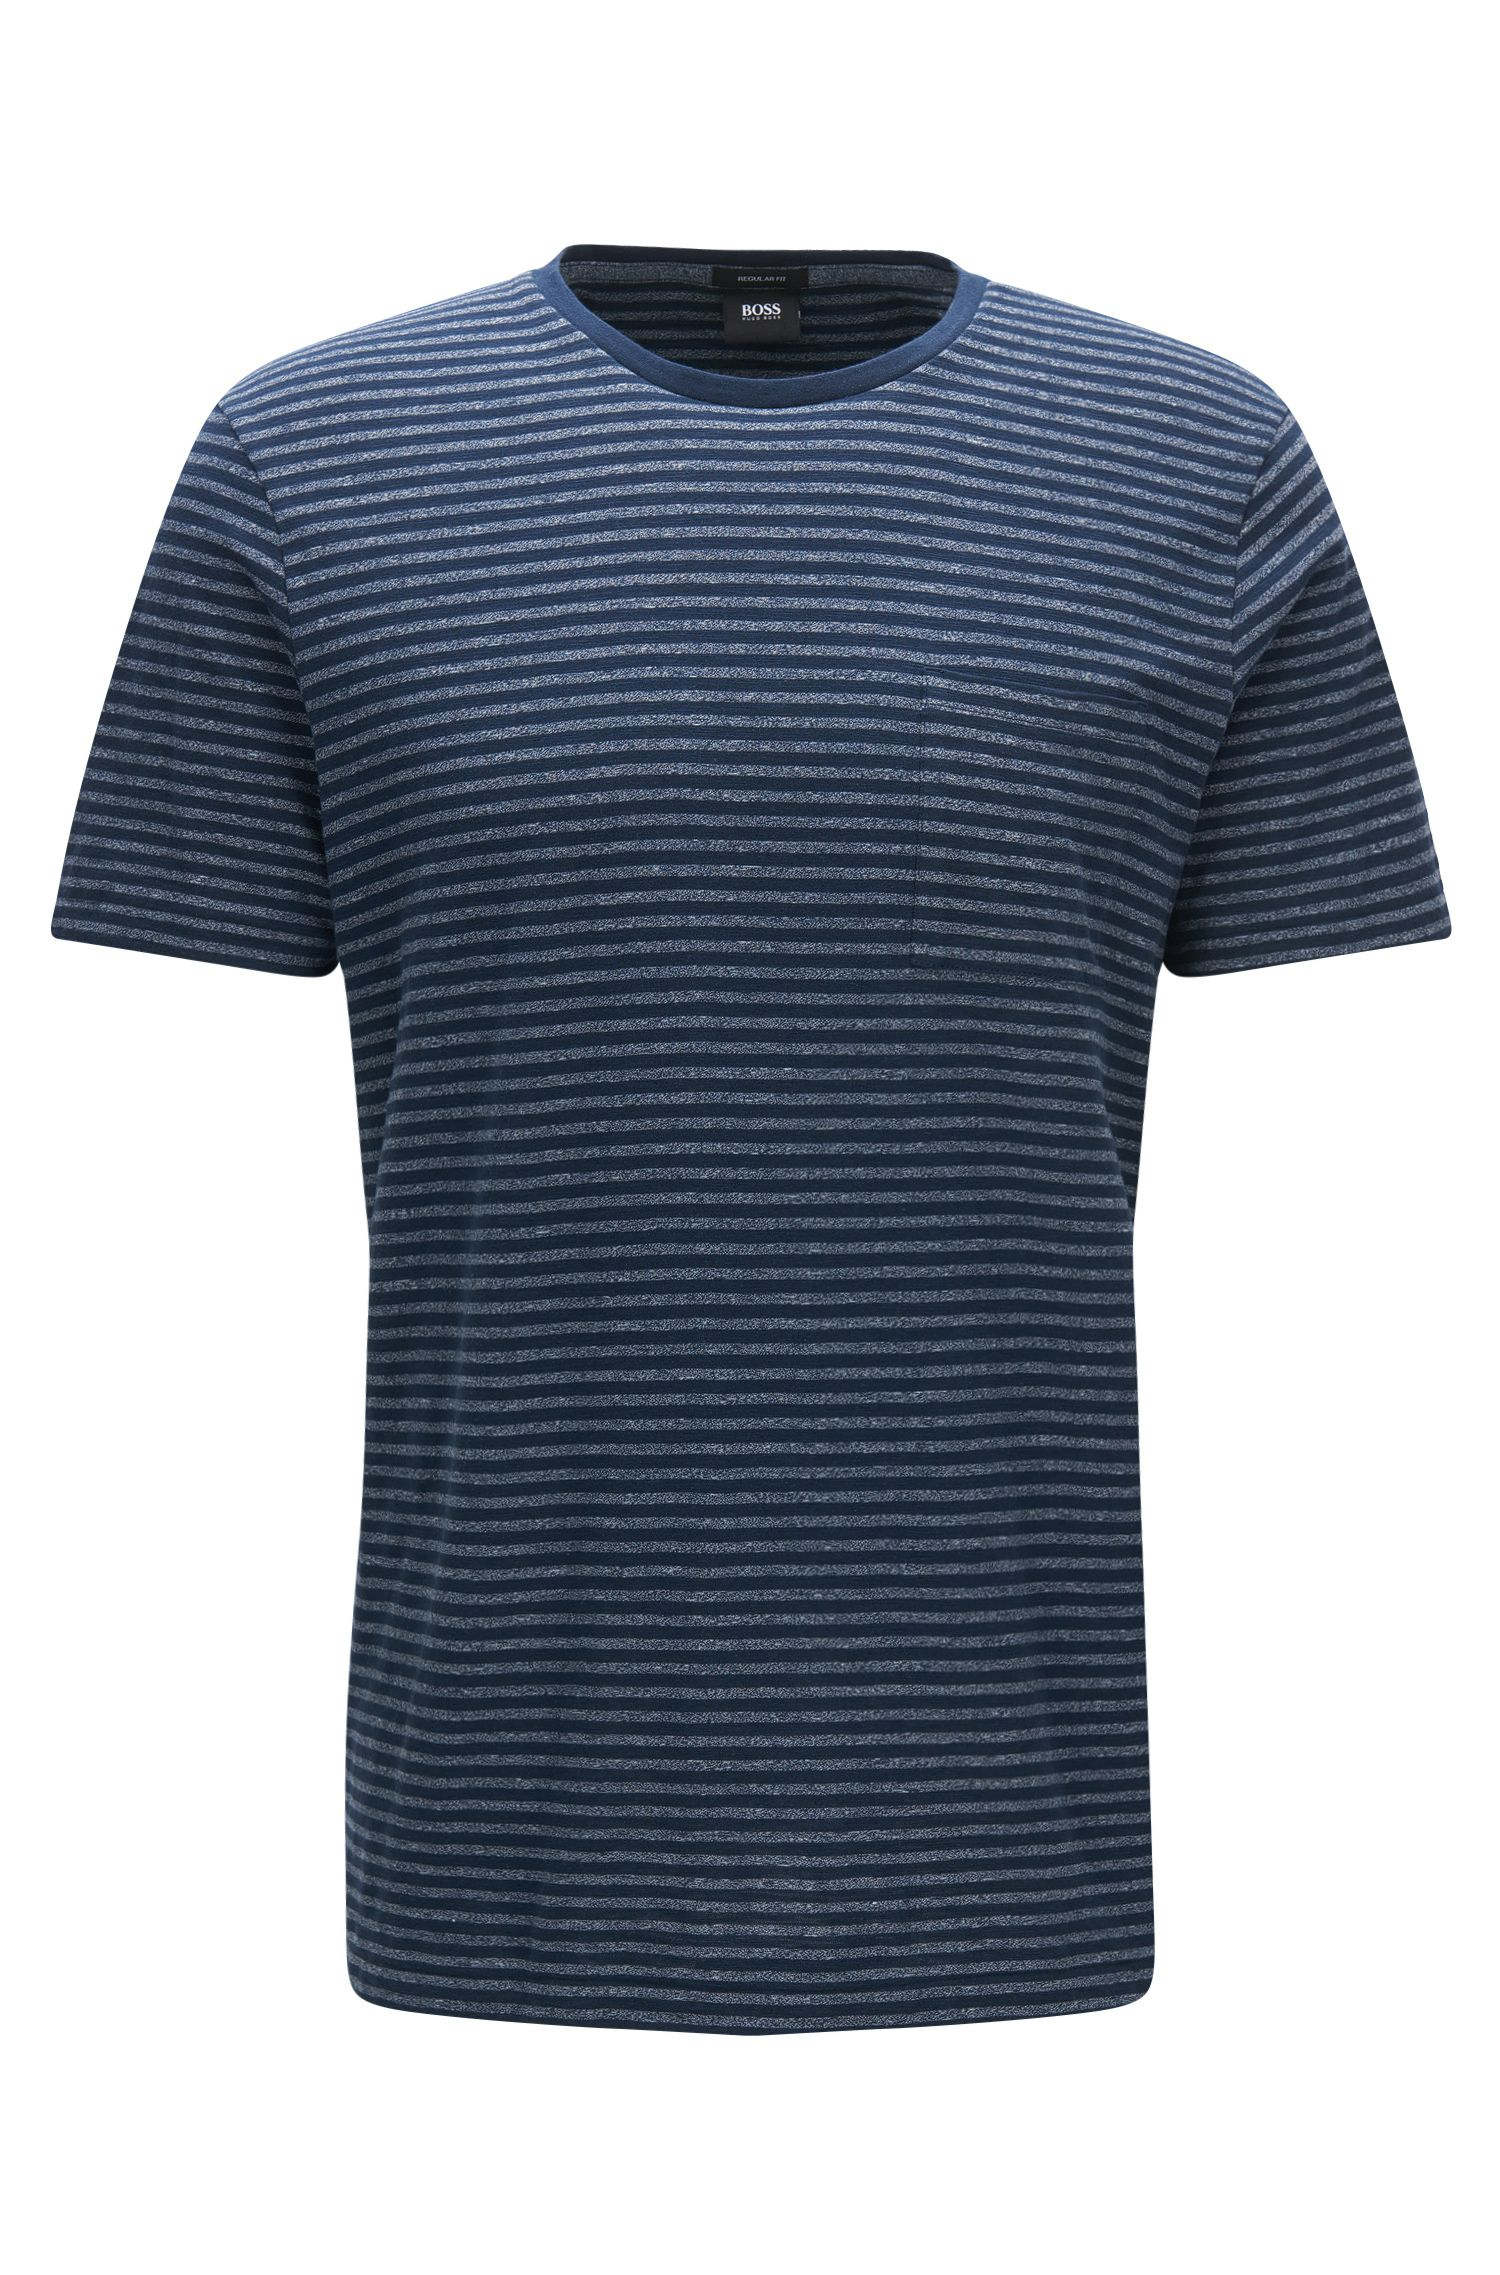 T-shirt regular fit in misto cotone con tessuto mouliné a righe